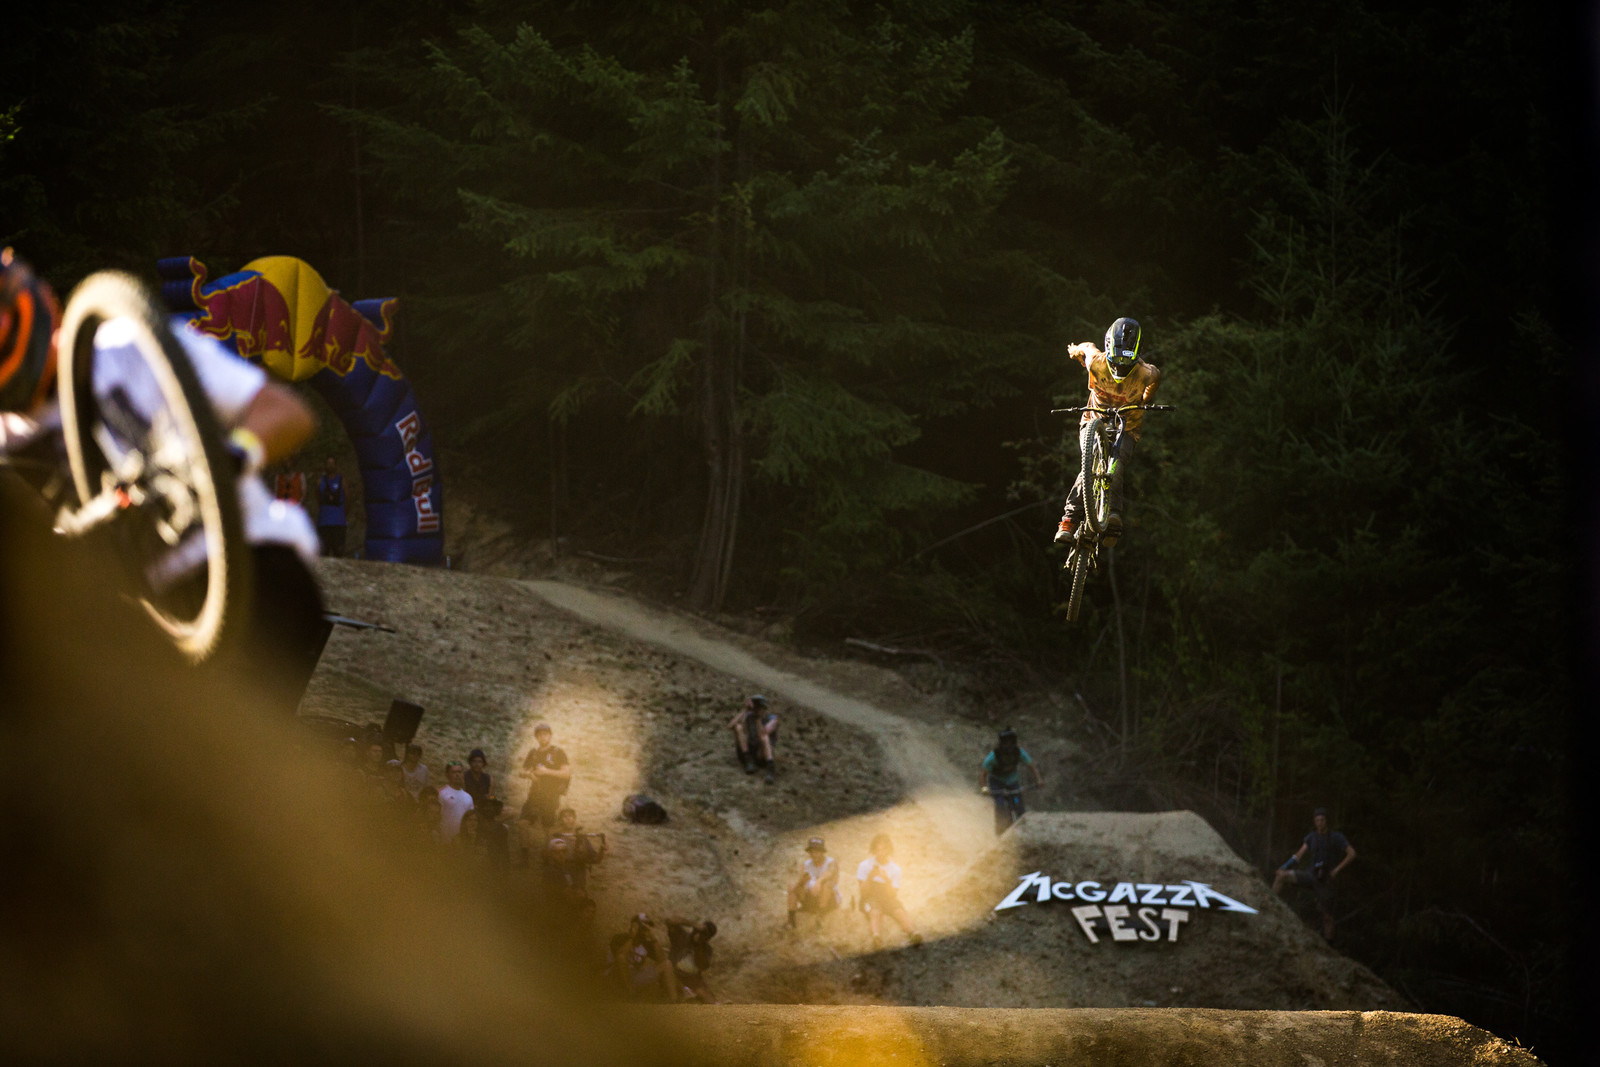 Pang - McGazza Fest Dream Track Jam - Mountain Biking Pictures - Vital MTB